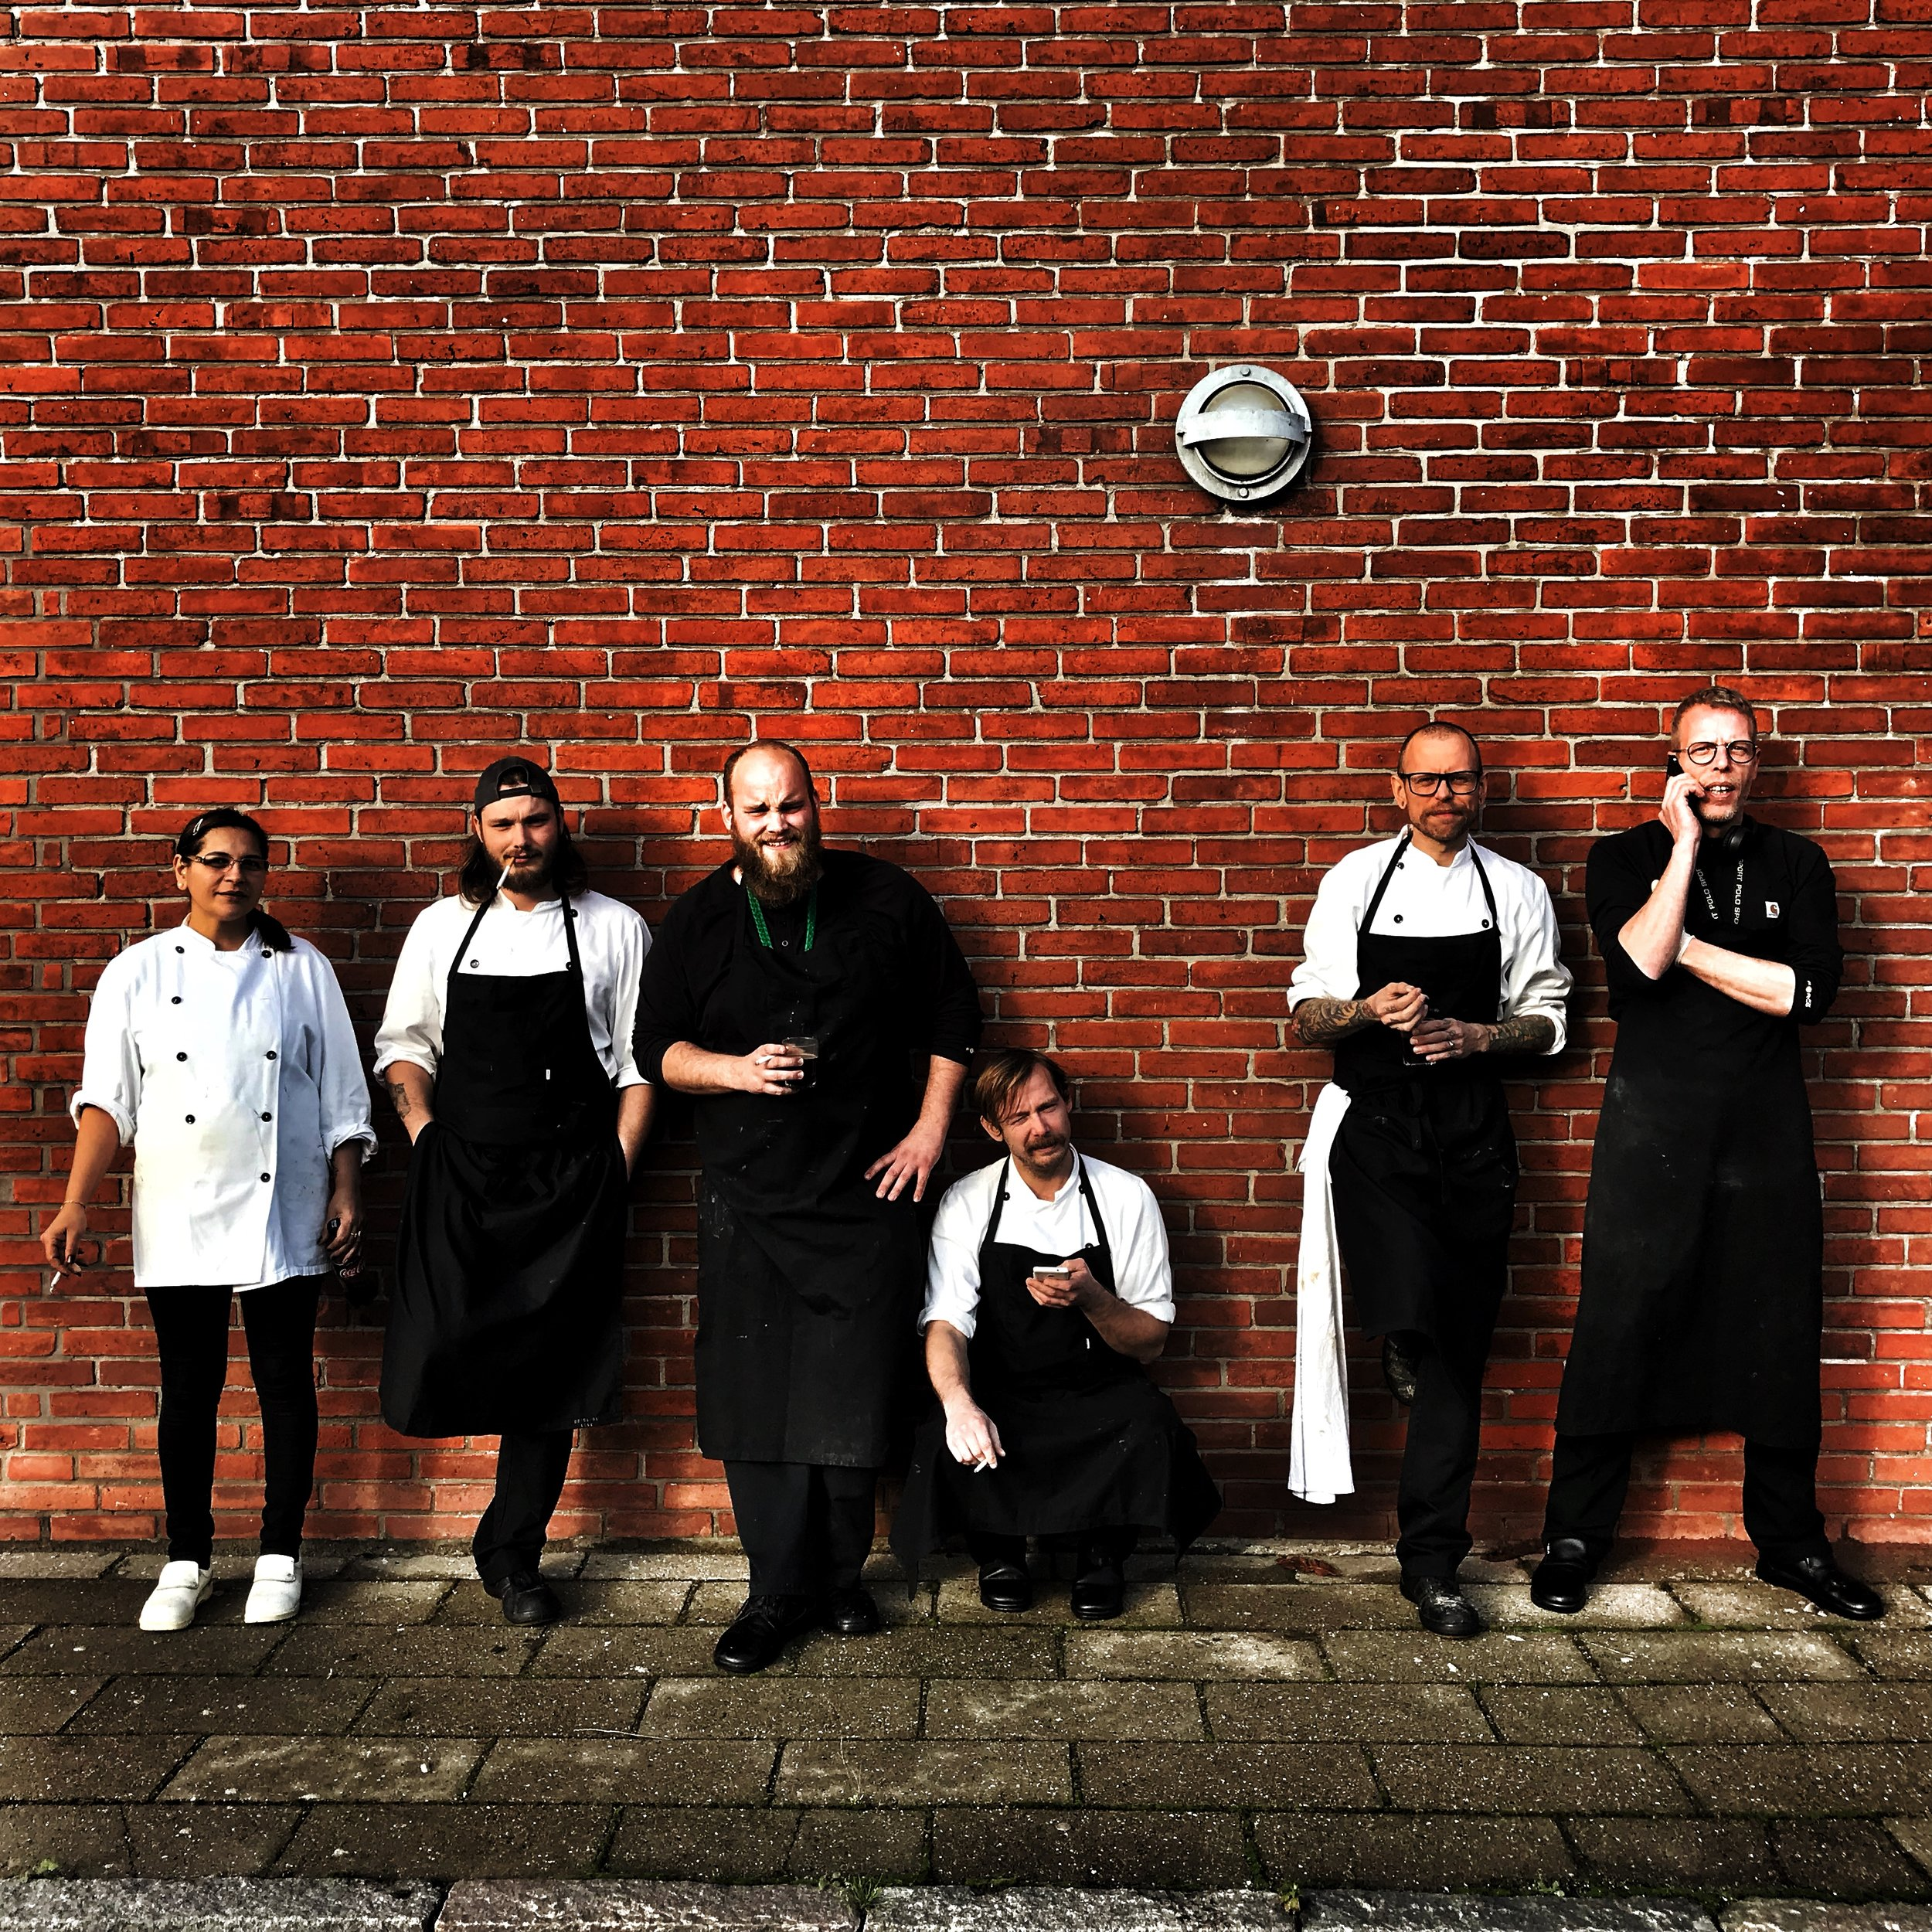 The Børn Mad crew of Folkets Madhus - I'm pushing for good food, not smoking!